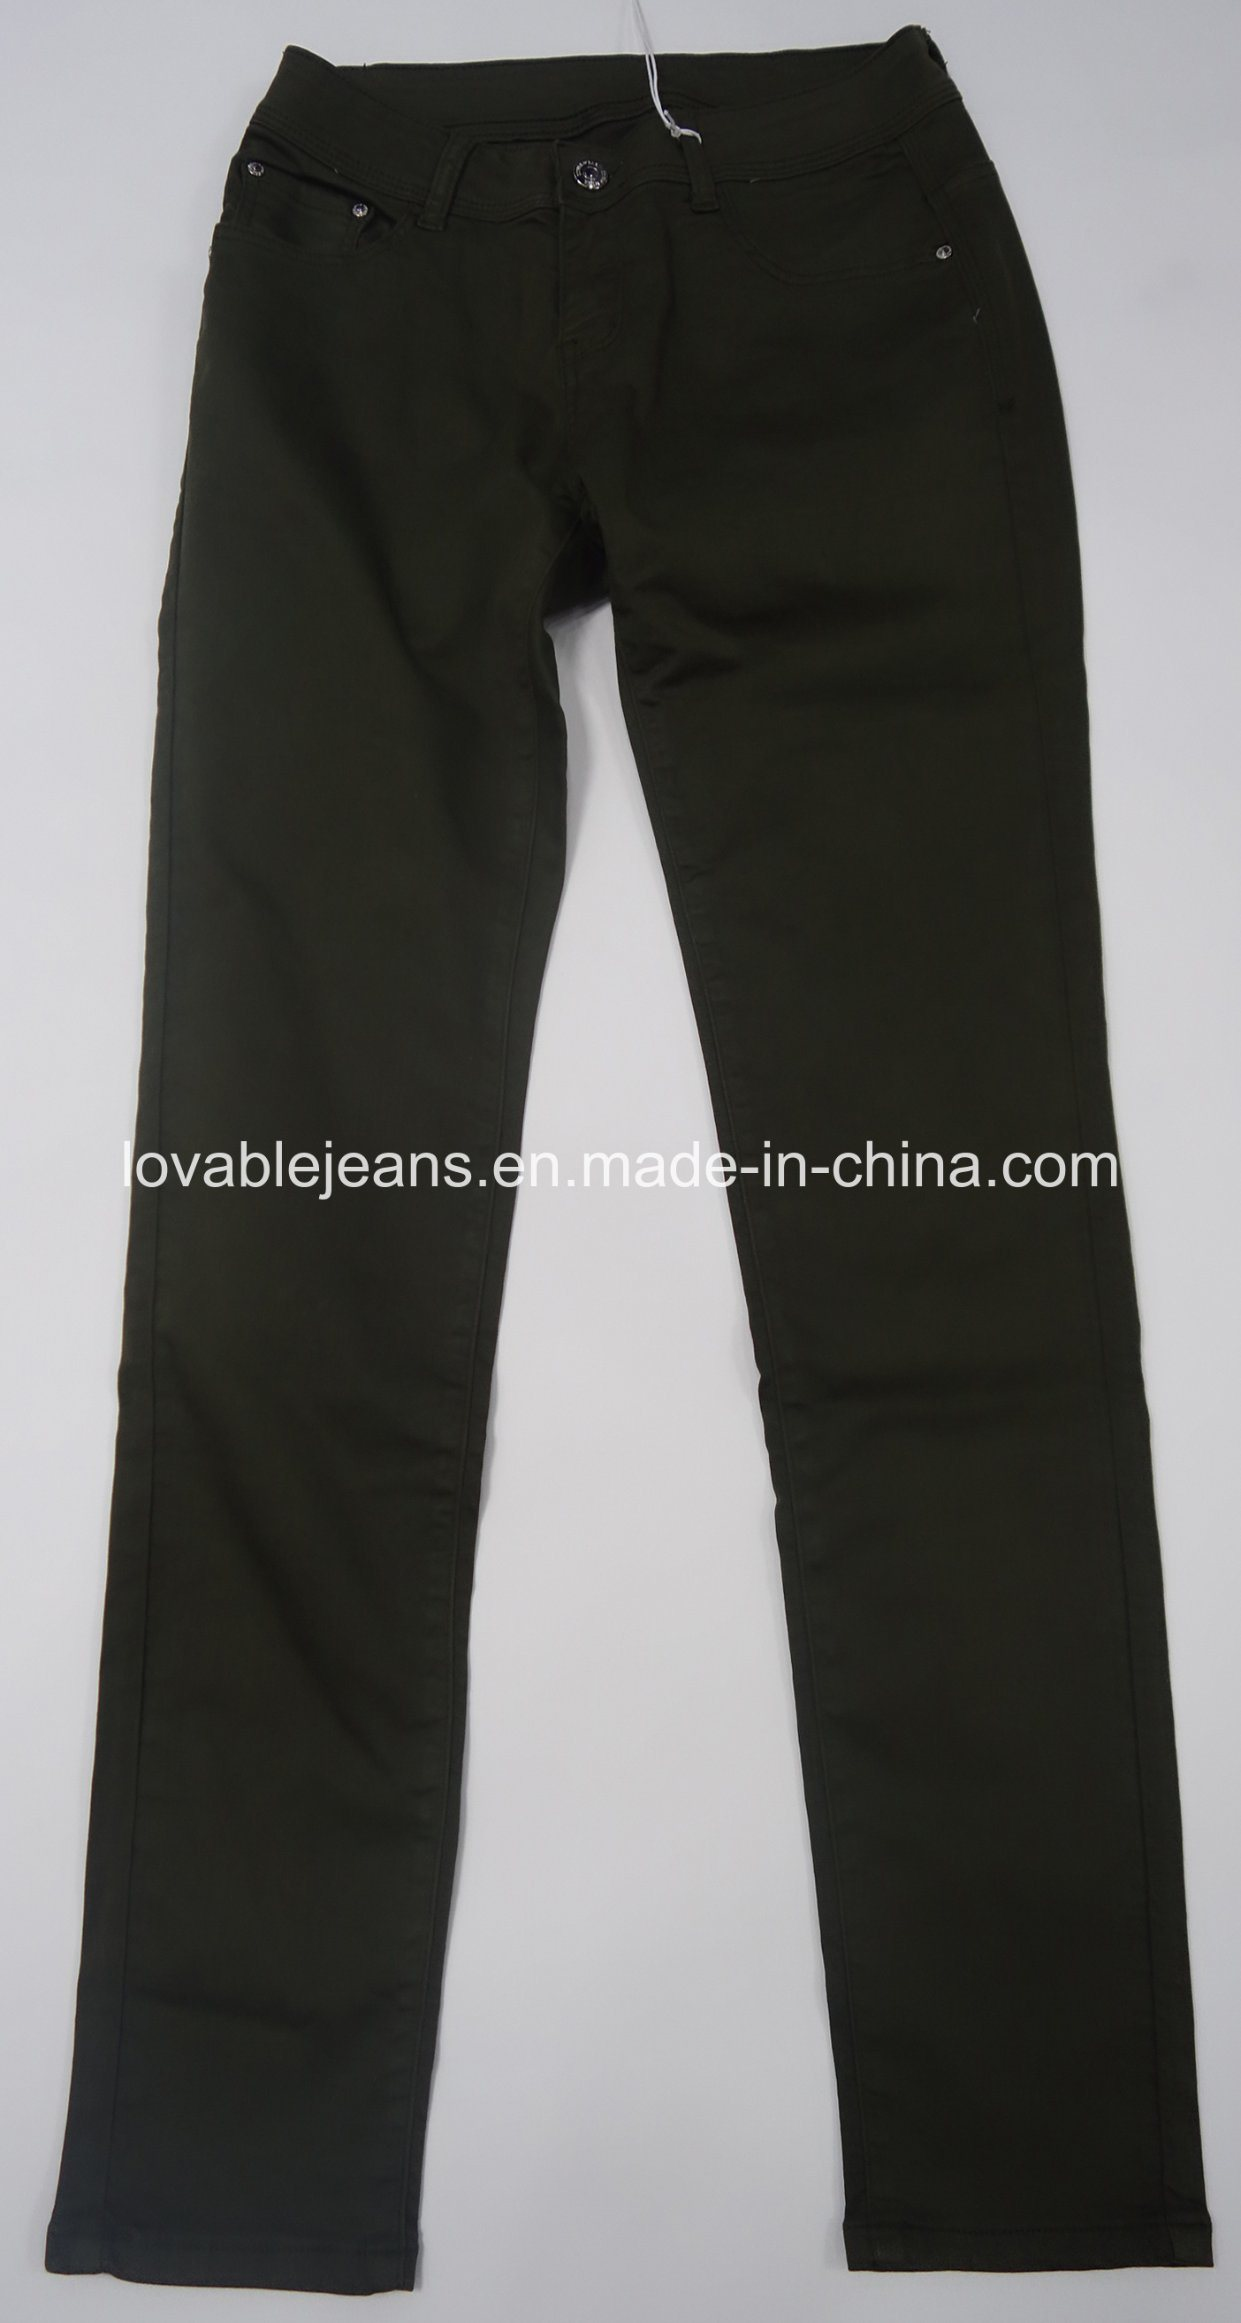 7.3oz Black Ladies Pants (HY16002C)